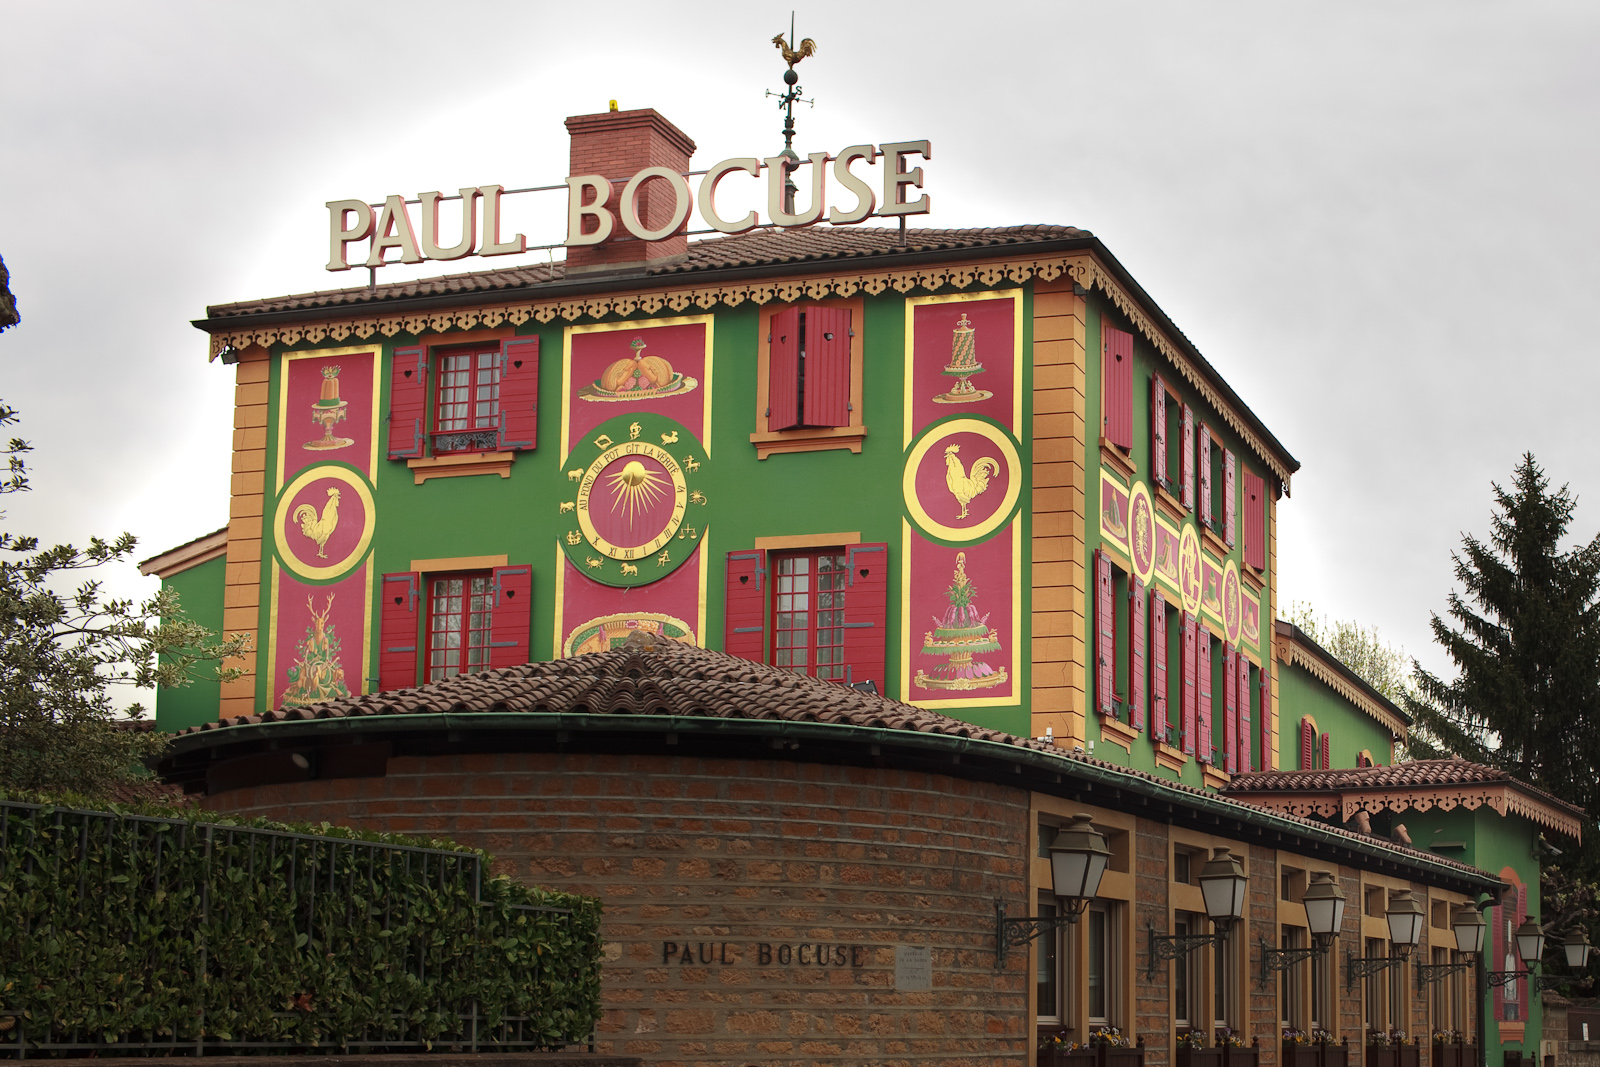 Paul Bocuse - Exterior of Restaurant